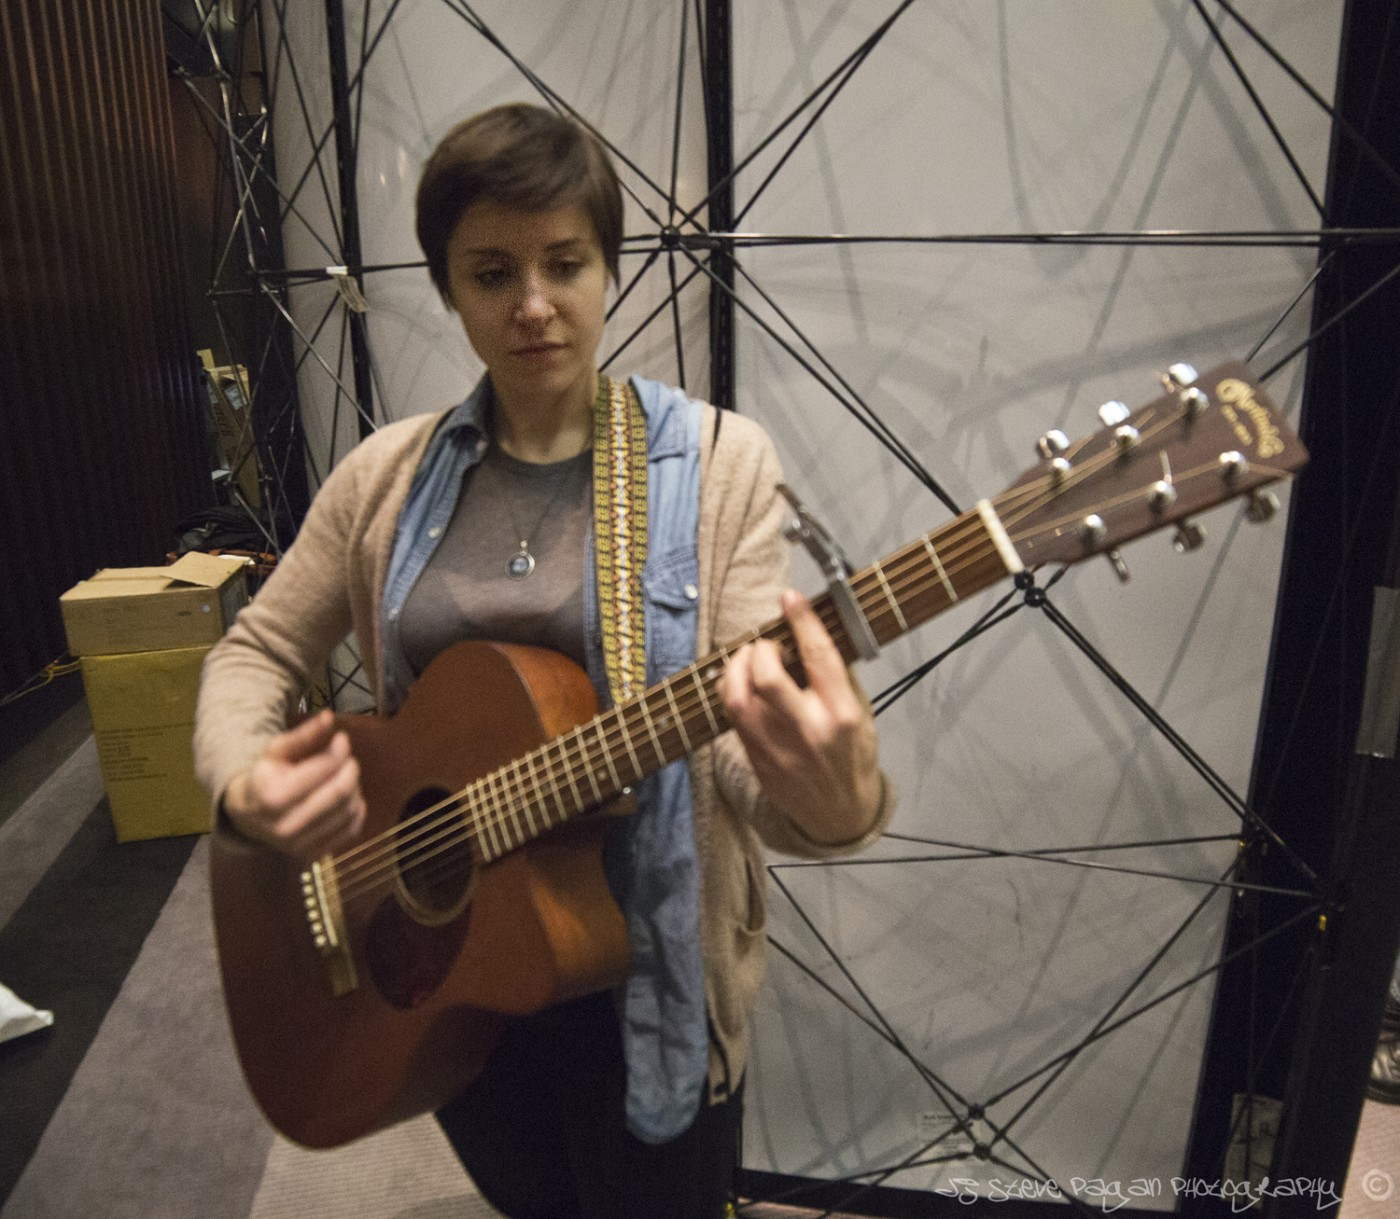 Critically acclaimed singer-songwriter Laura Stevenson preps for her Saturday set in The Cavern.